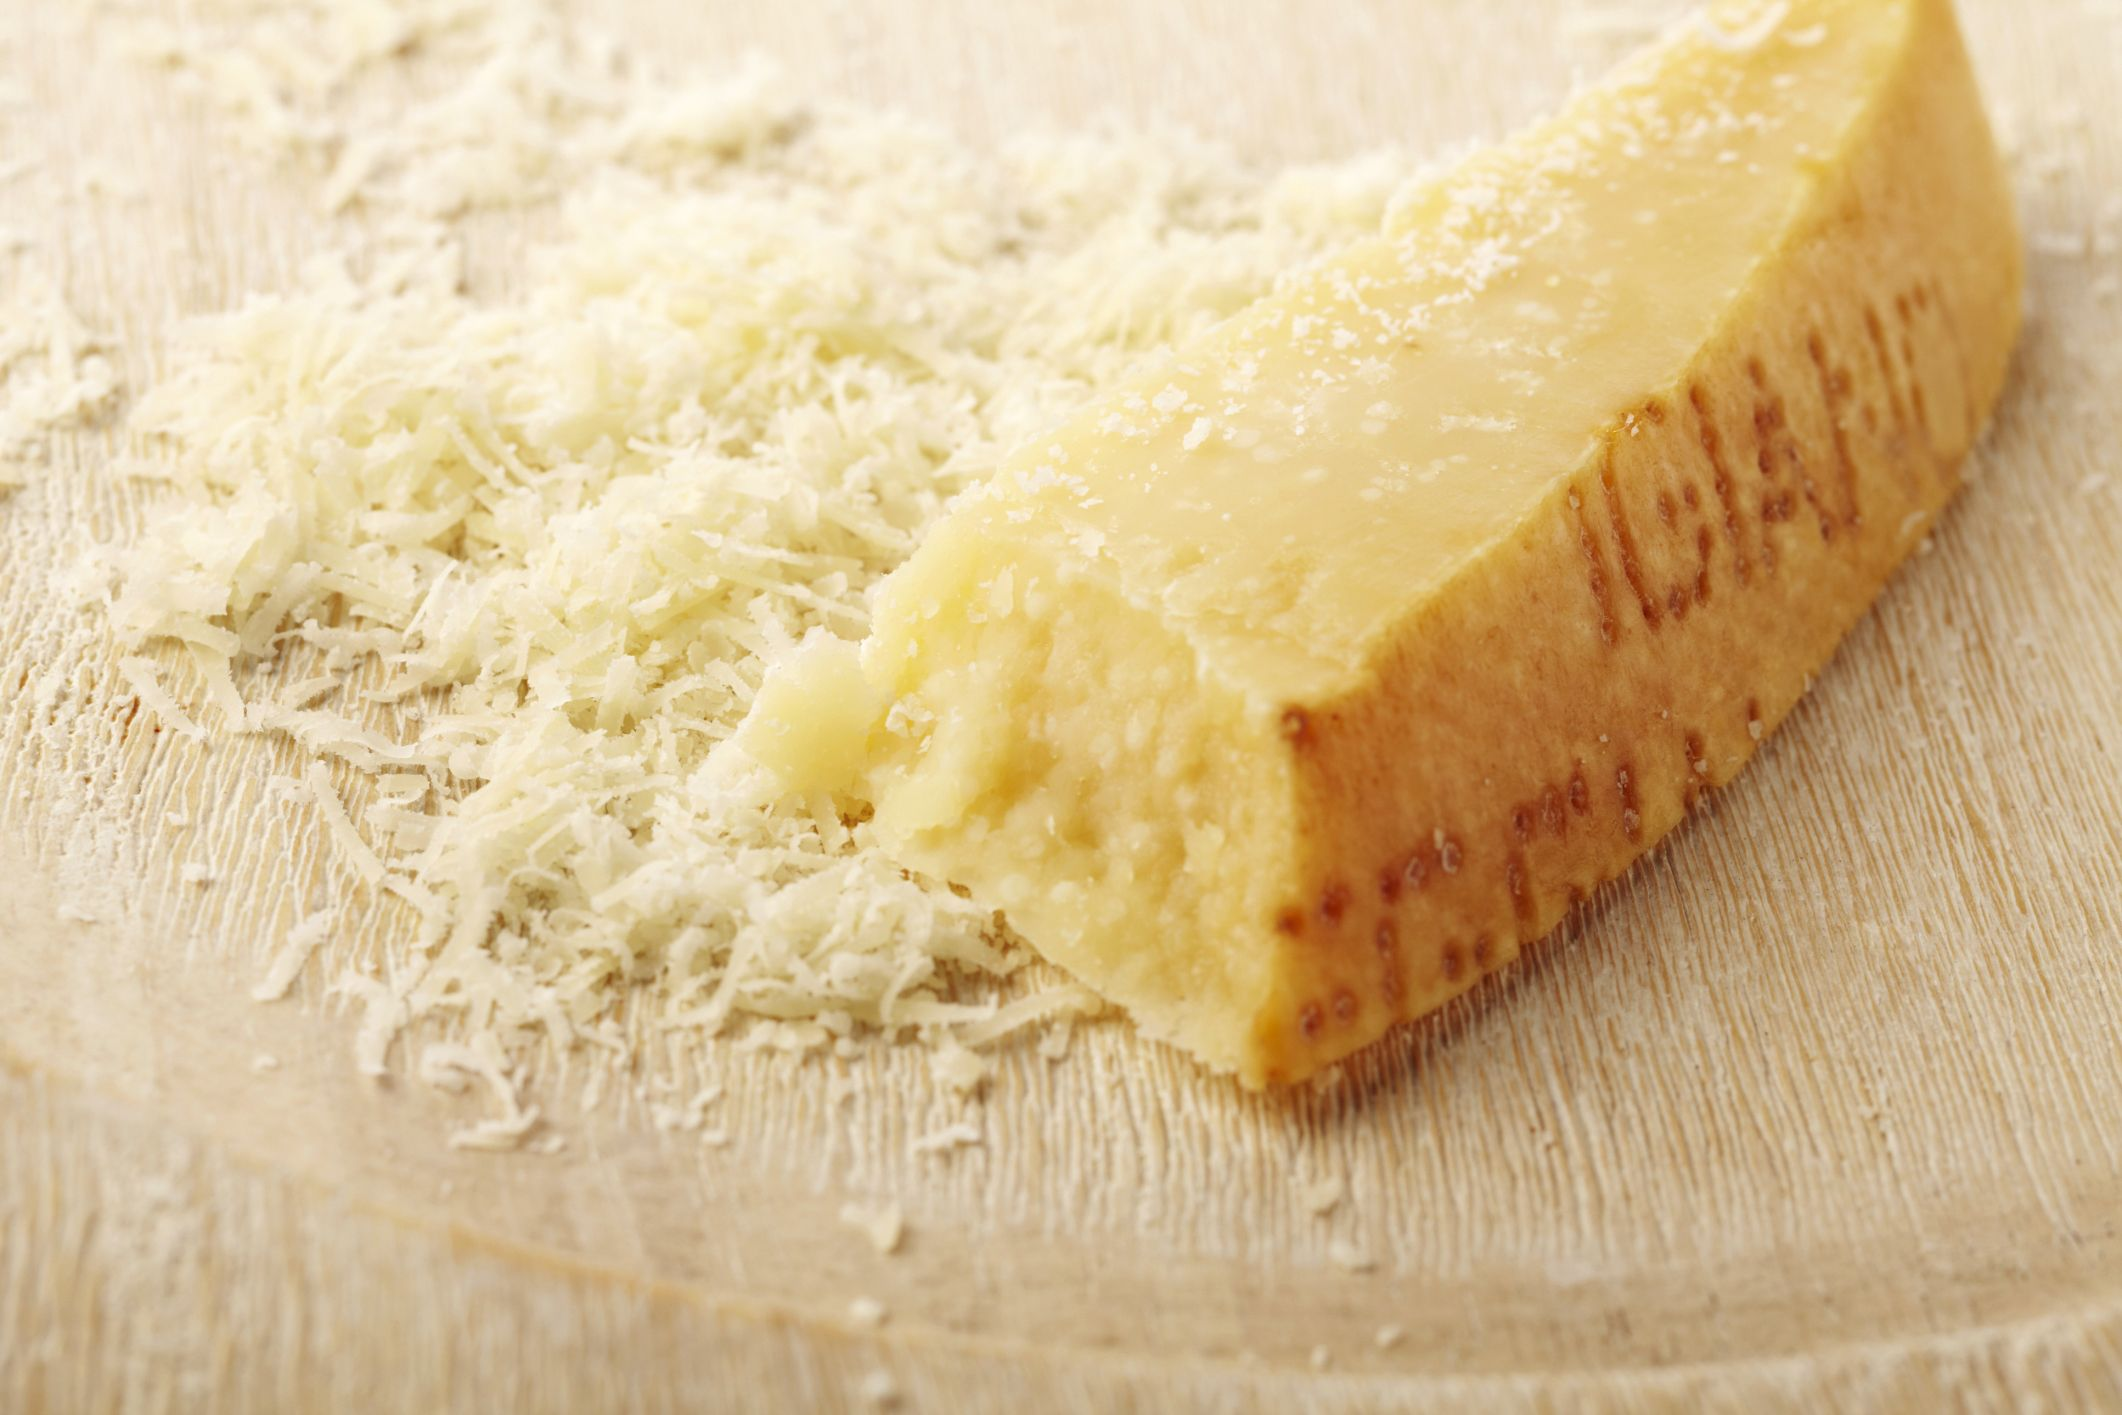 Supermarkets Pull Grated Parmesan From Shelves For Containing Wood Pulp